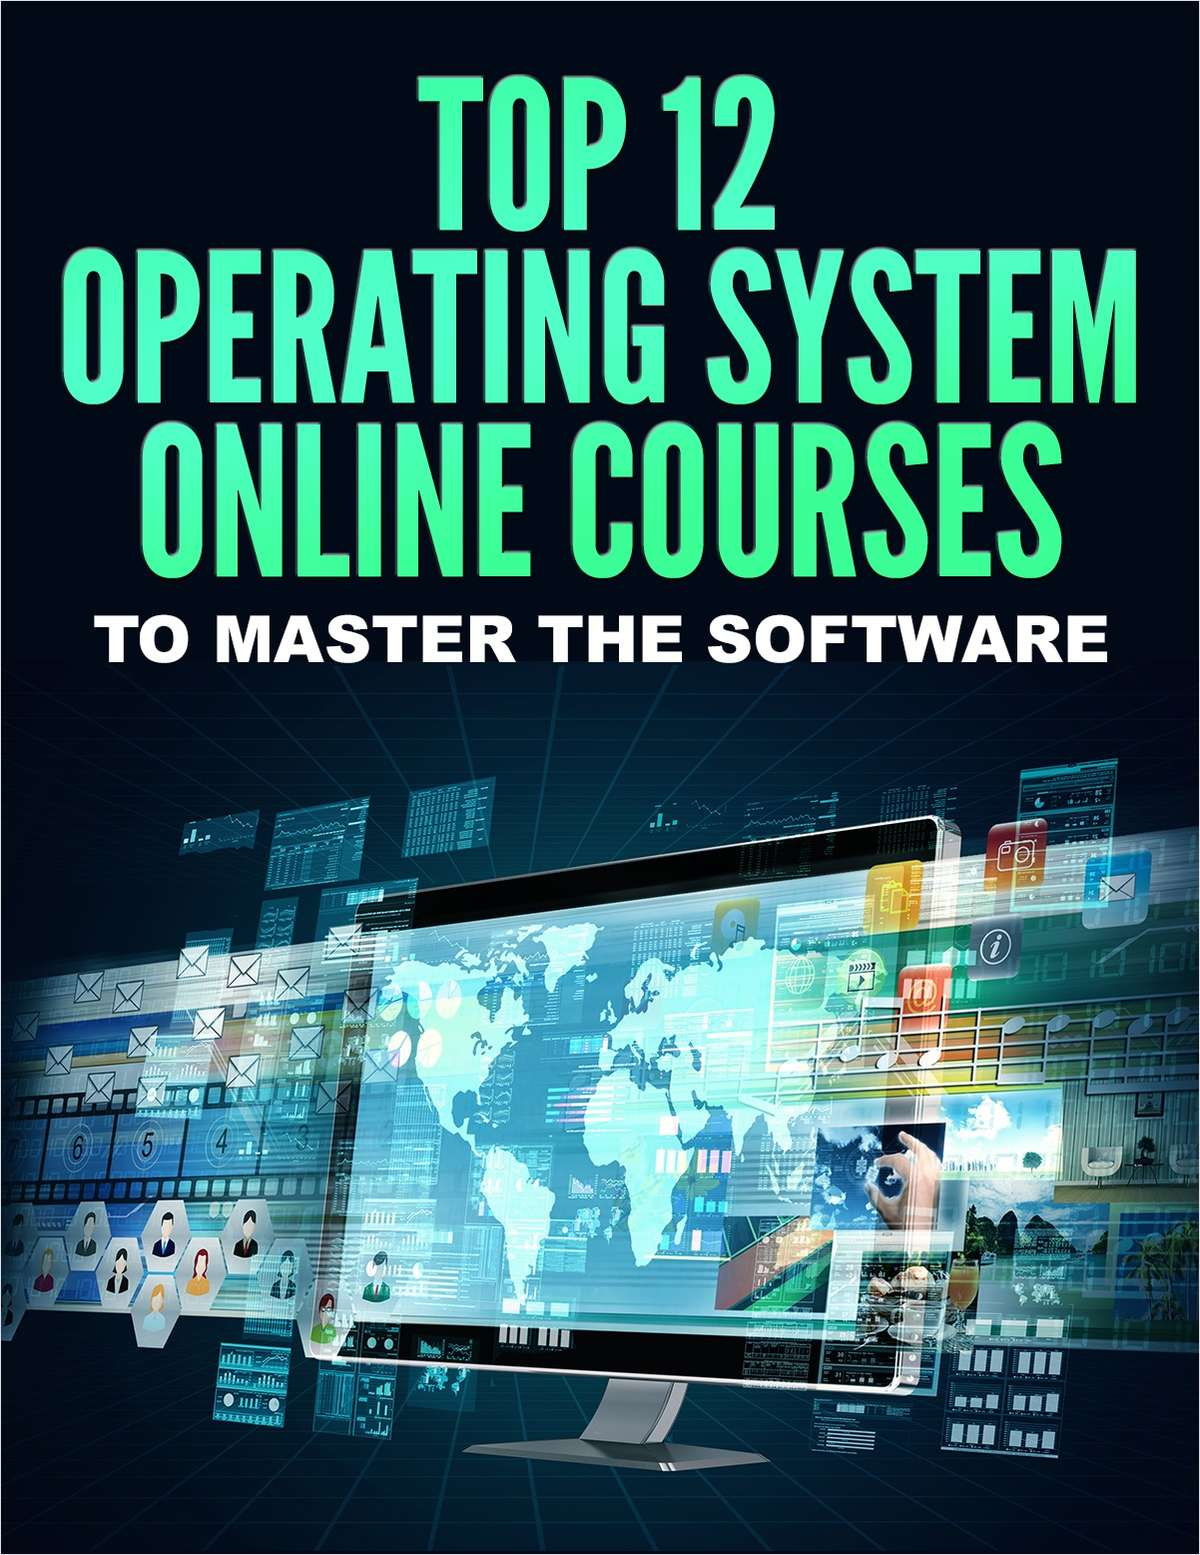 Top 12 Operating System Online Courses to Master the Software